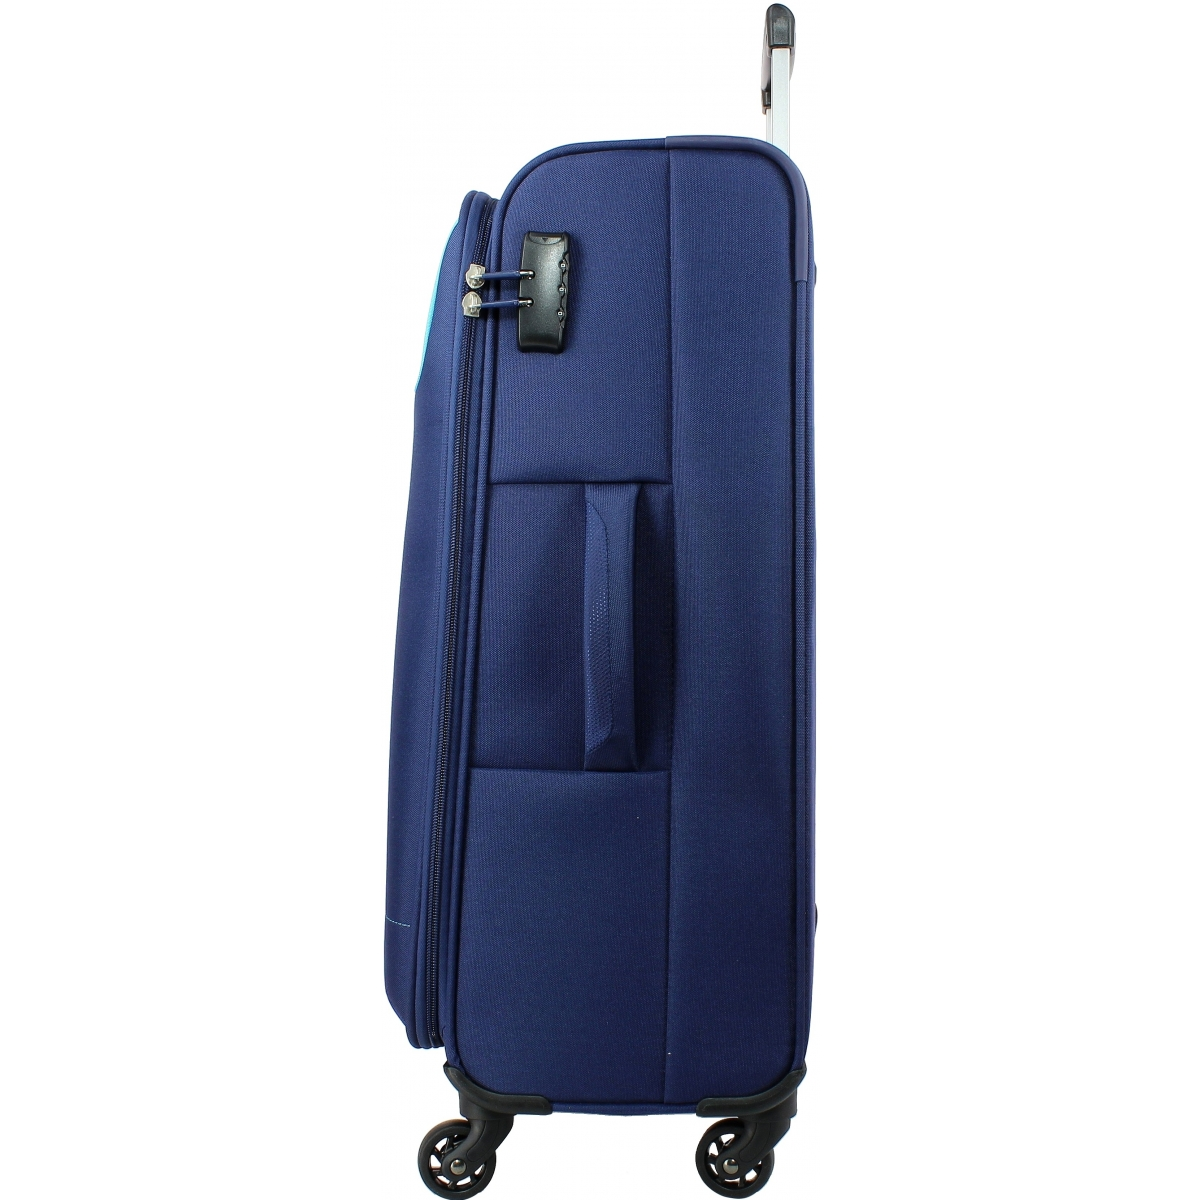 valise american tourister funshine 66cm funshine08 couleur principale orion blue valise. Black Bedroom Furniture Sets. Home Design Ideas